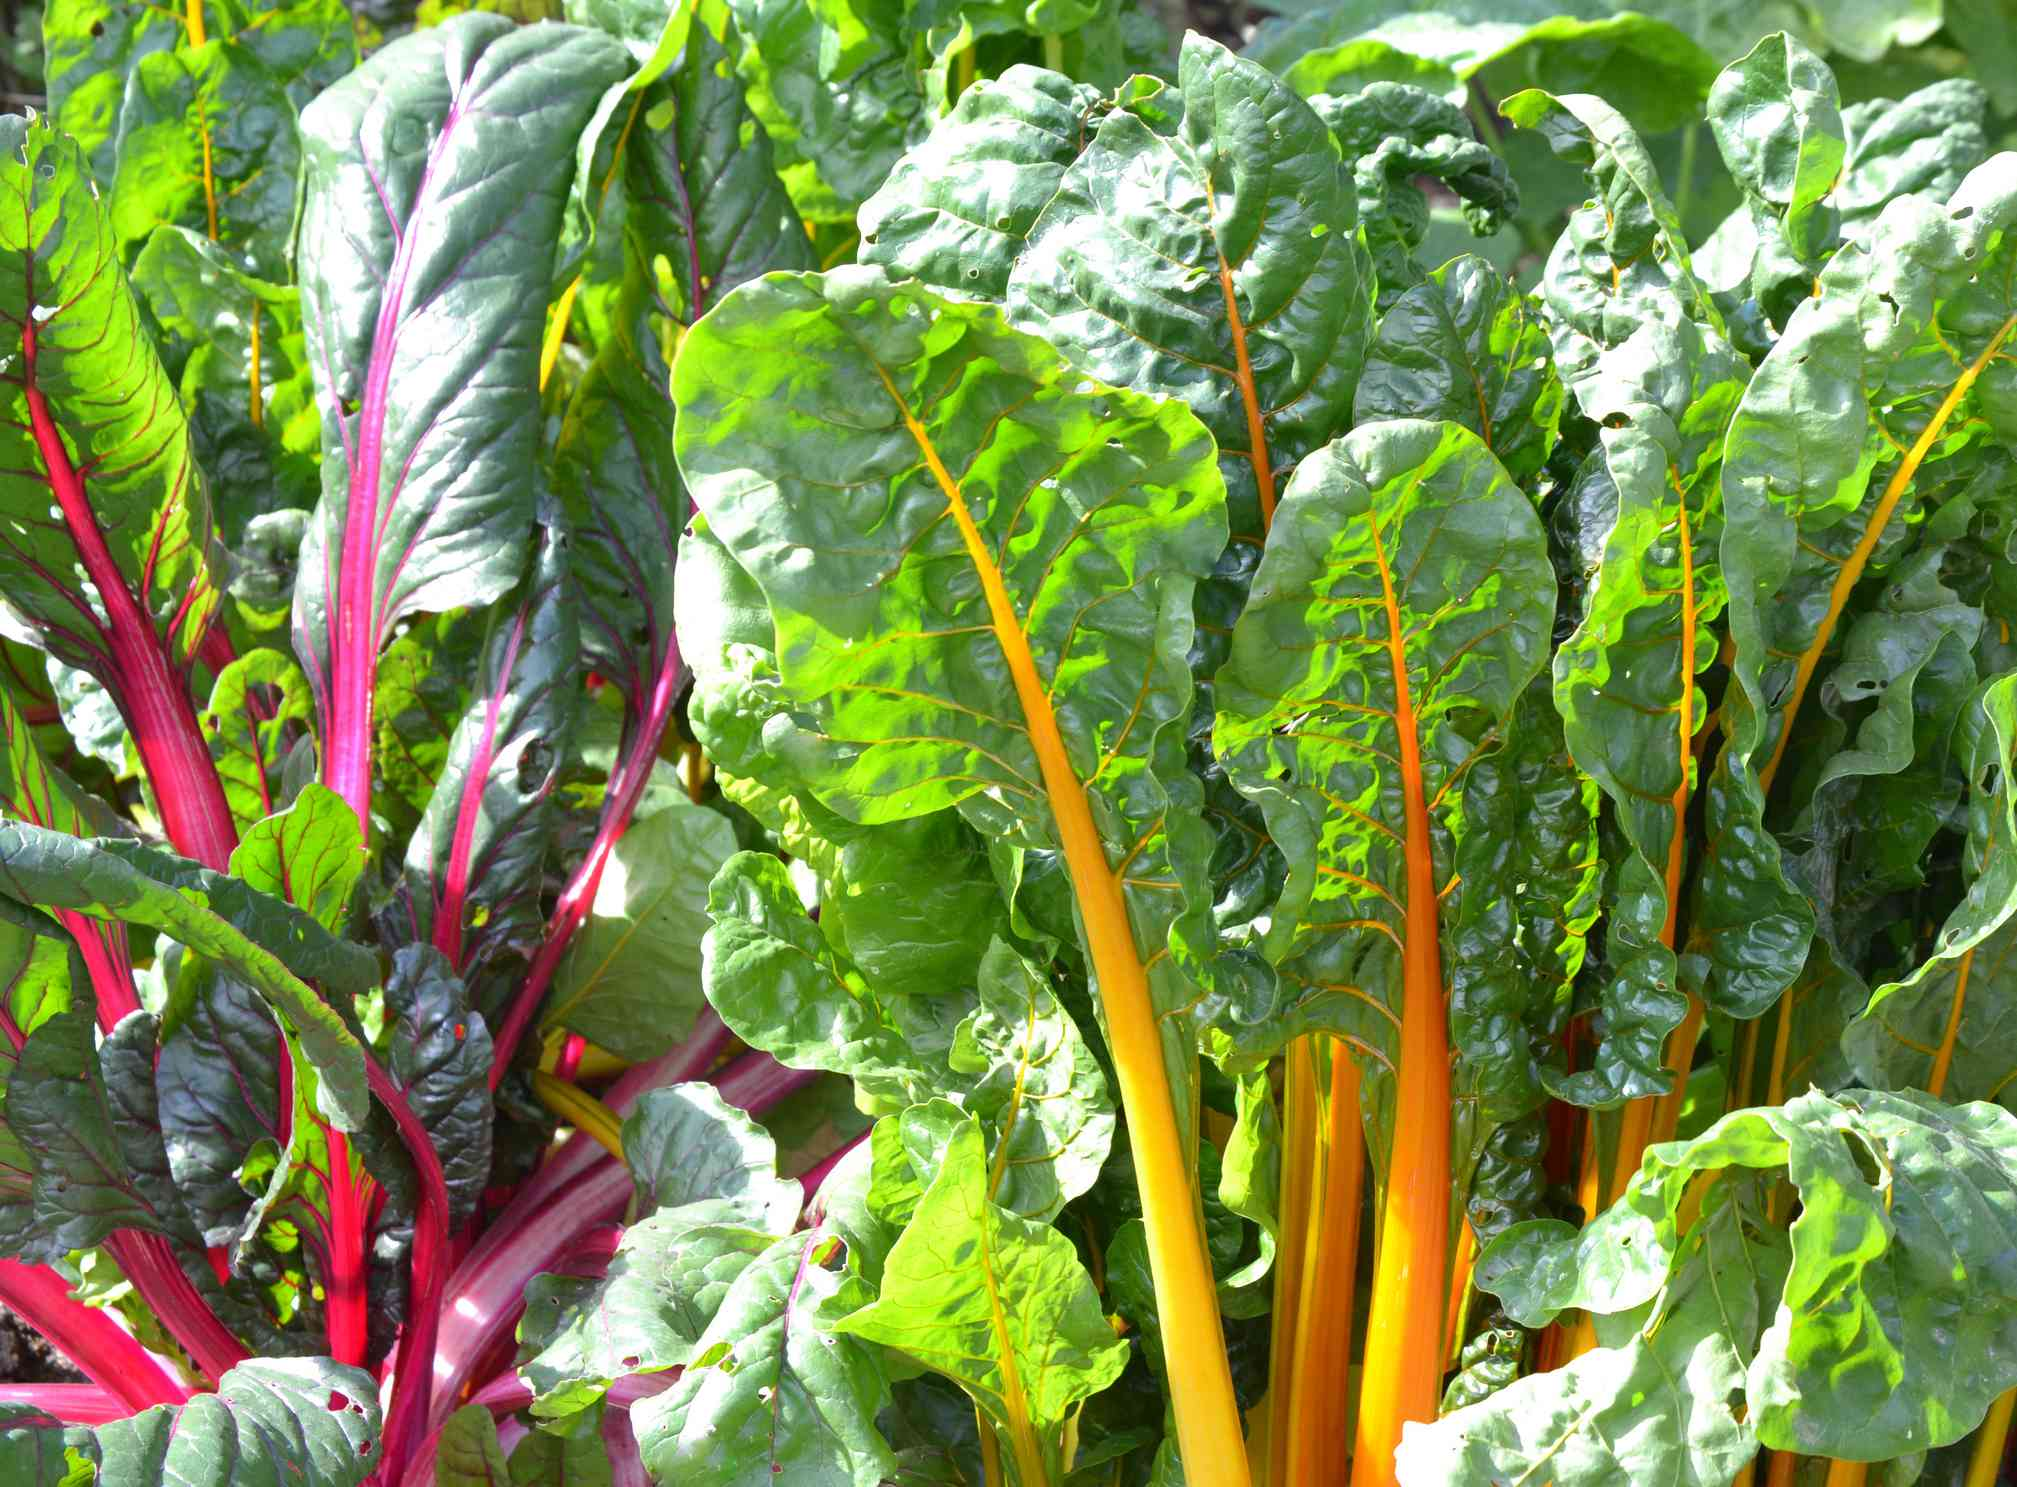 Swiss chard with purple and yellow stems in a garden